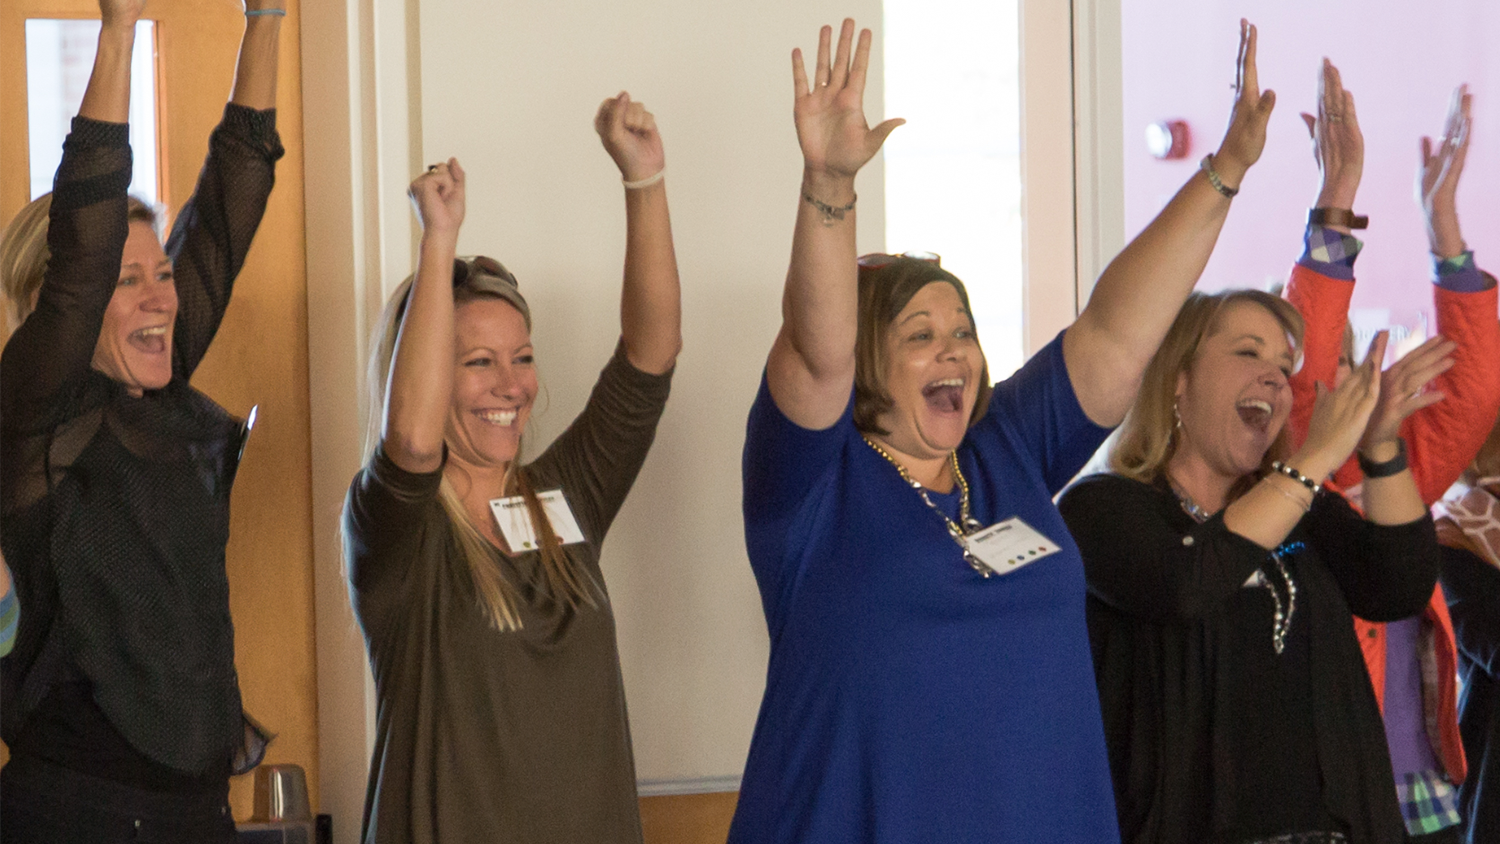 Educators cheer at a gathering of the North Carolina Digital Leaders Coaching Network.